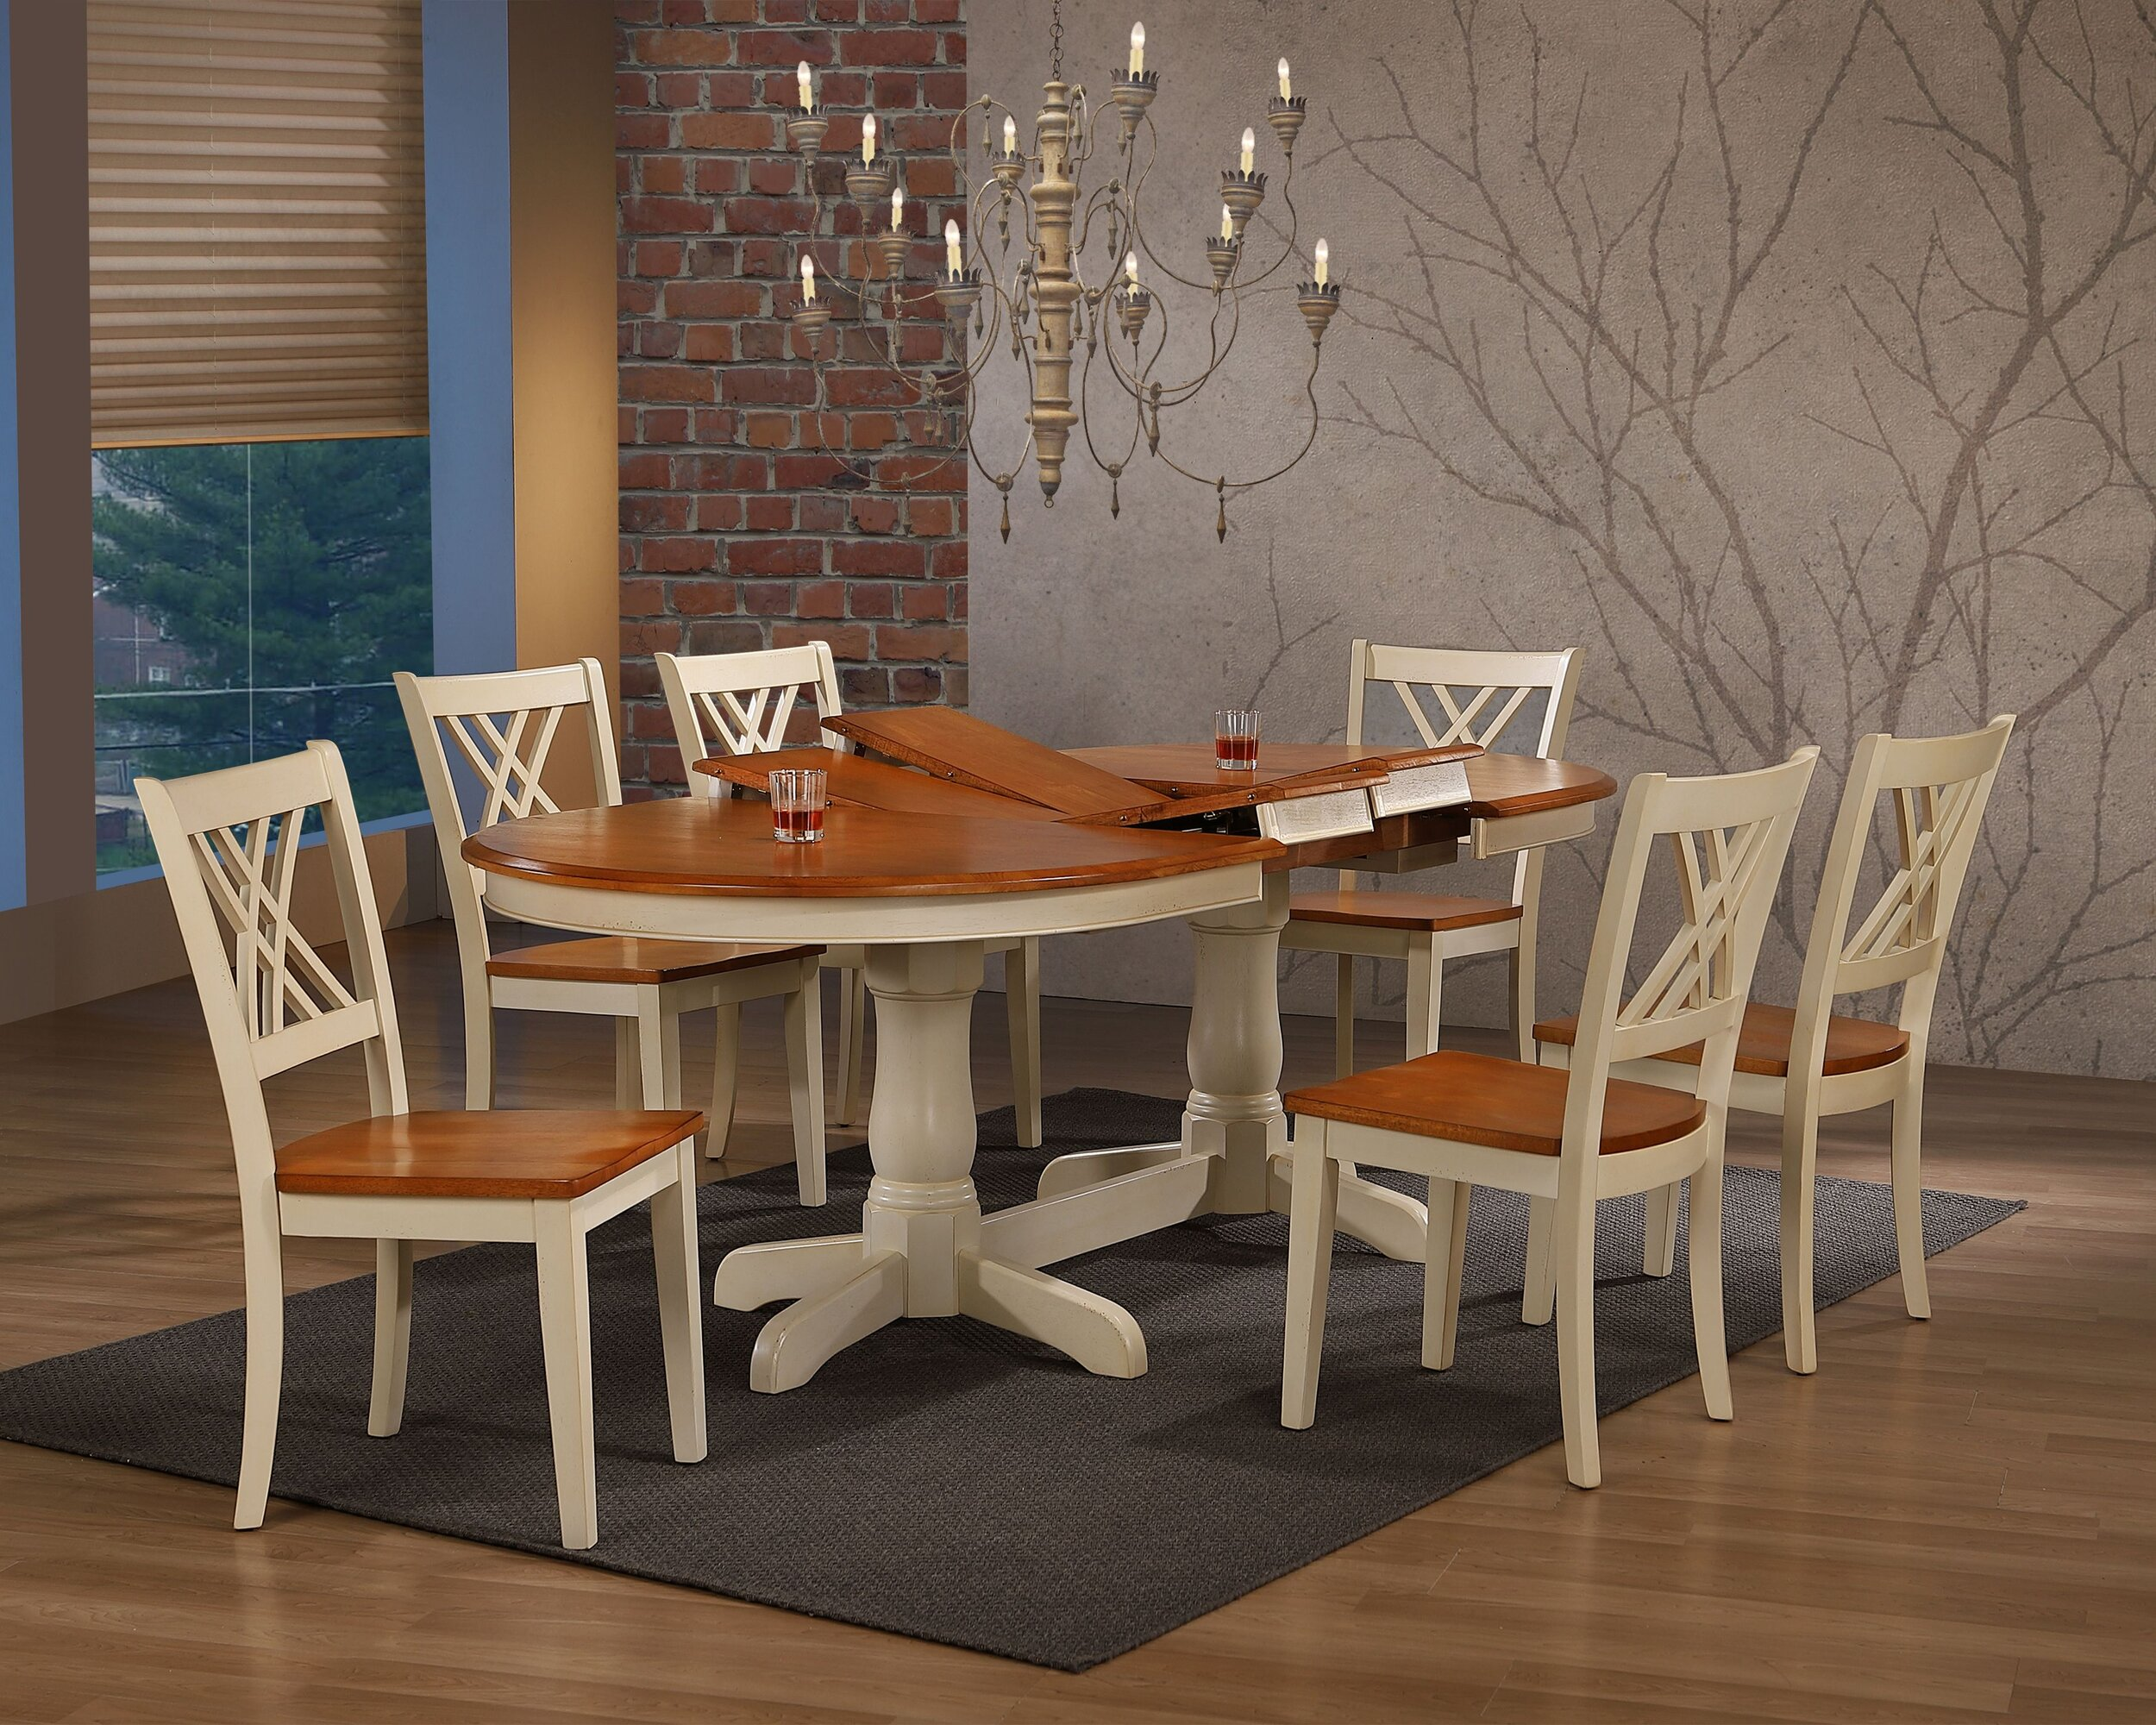 "OV90-CH56-CL-BI  Table dimensions: 42""W x 66""-78""-90""L x 30""H  Chairs dimensions: 19 1/2""W x 21 3/4""D x 36""H"